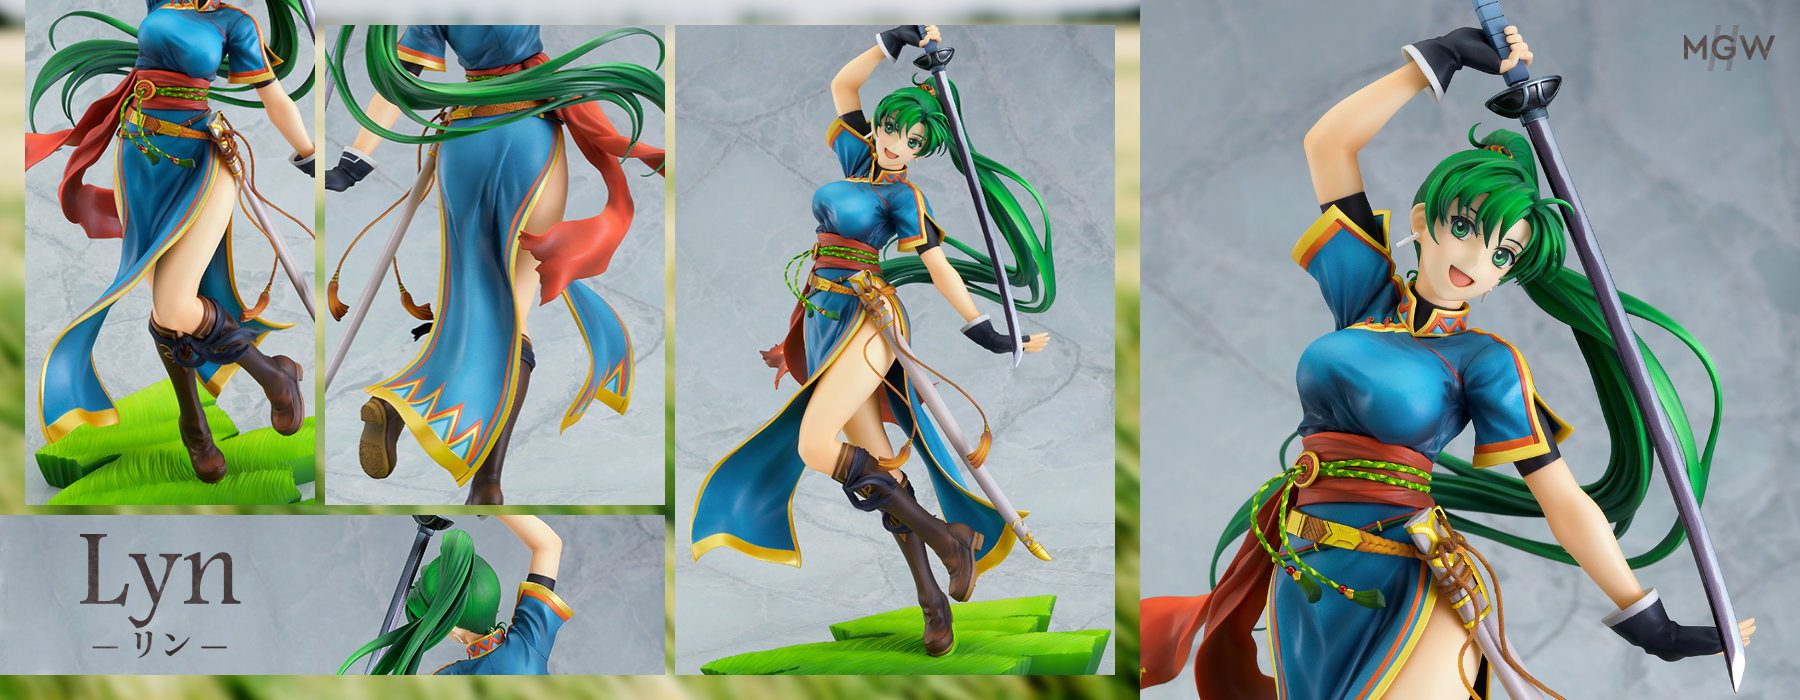 Lyn by INTELLIGENT SYSTEMS from Fire Emblem Blazing Blade MGW Anime Figure Pre order Guide